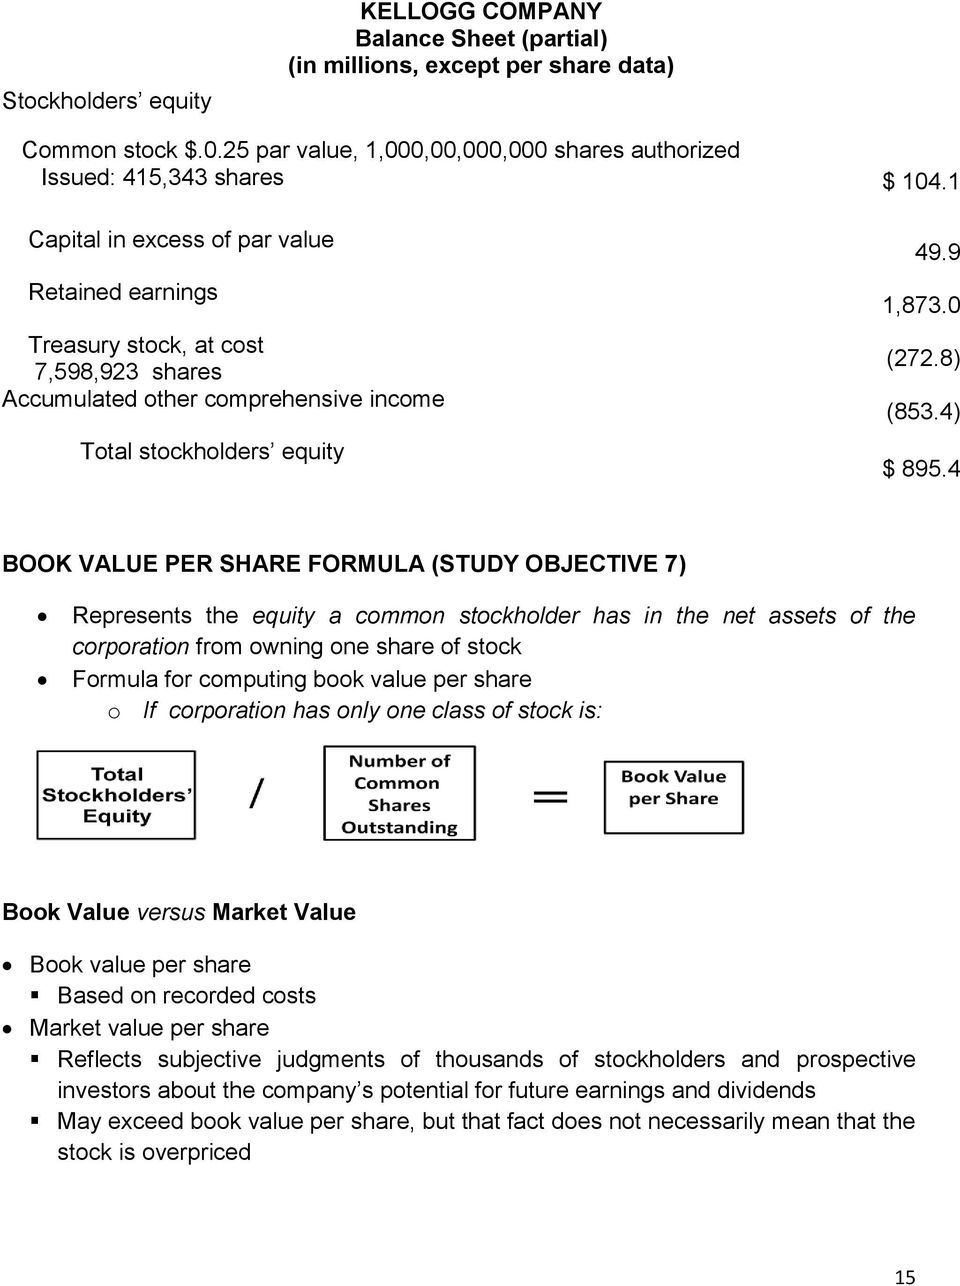 4 BOOK VALUE PER SHARE FORMULA (STUDY OBJECTIVE 7) Represents the equity a common stockholder has in the net assets of the corporation from owning one share of stock Formula for computing book value